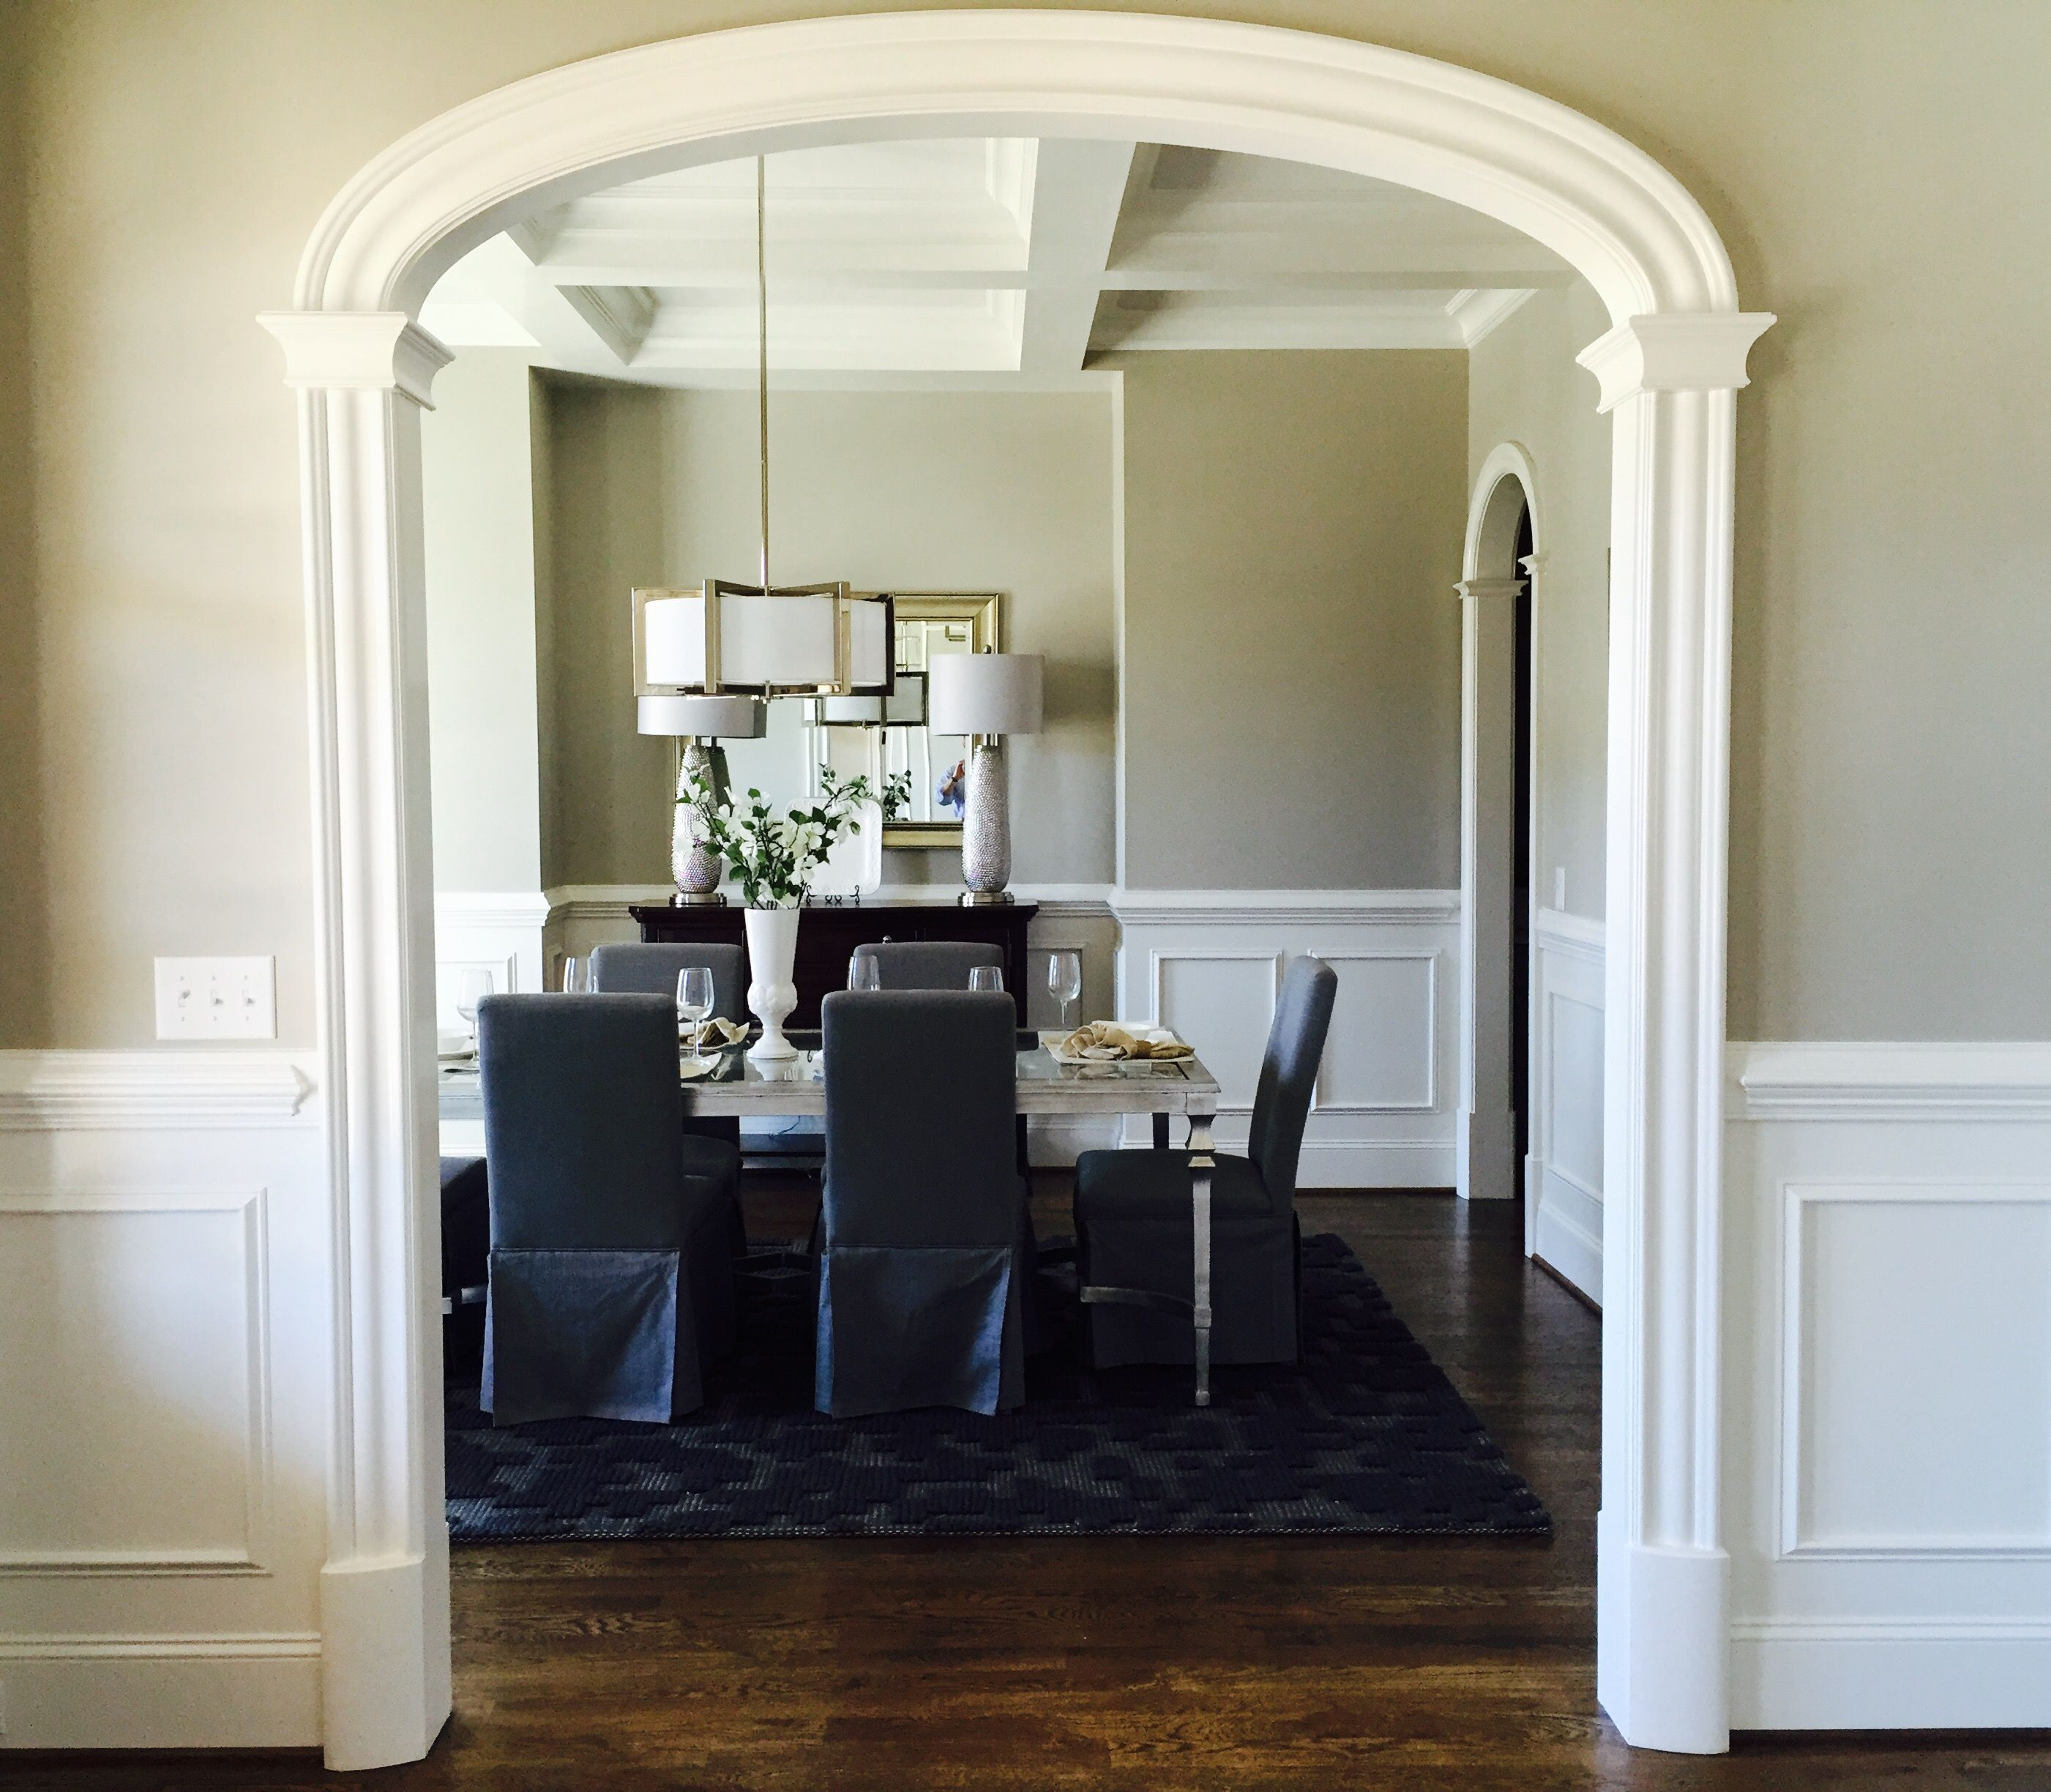 How To Add Trim To Archway Dining Room Arched Entryway Wood Arch Arch Entryway Arch Doorway